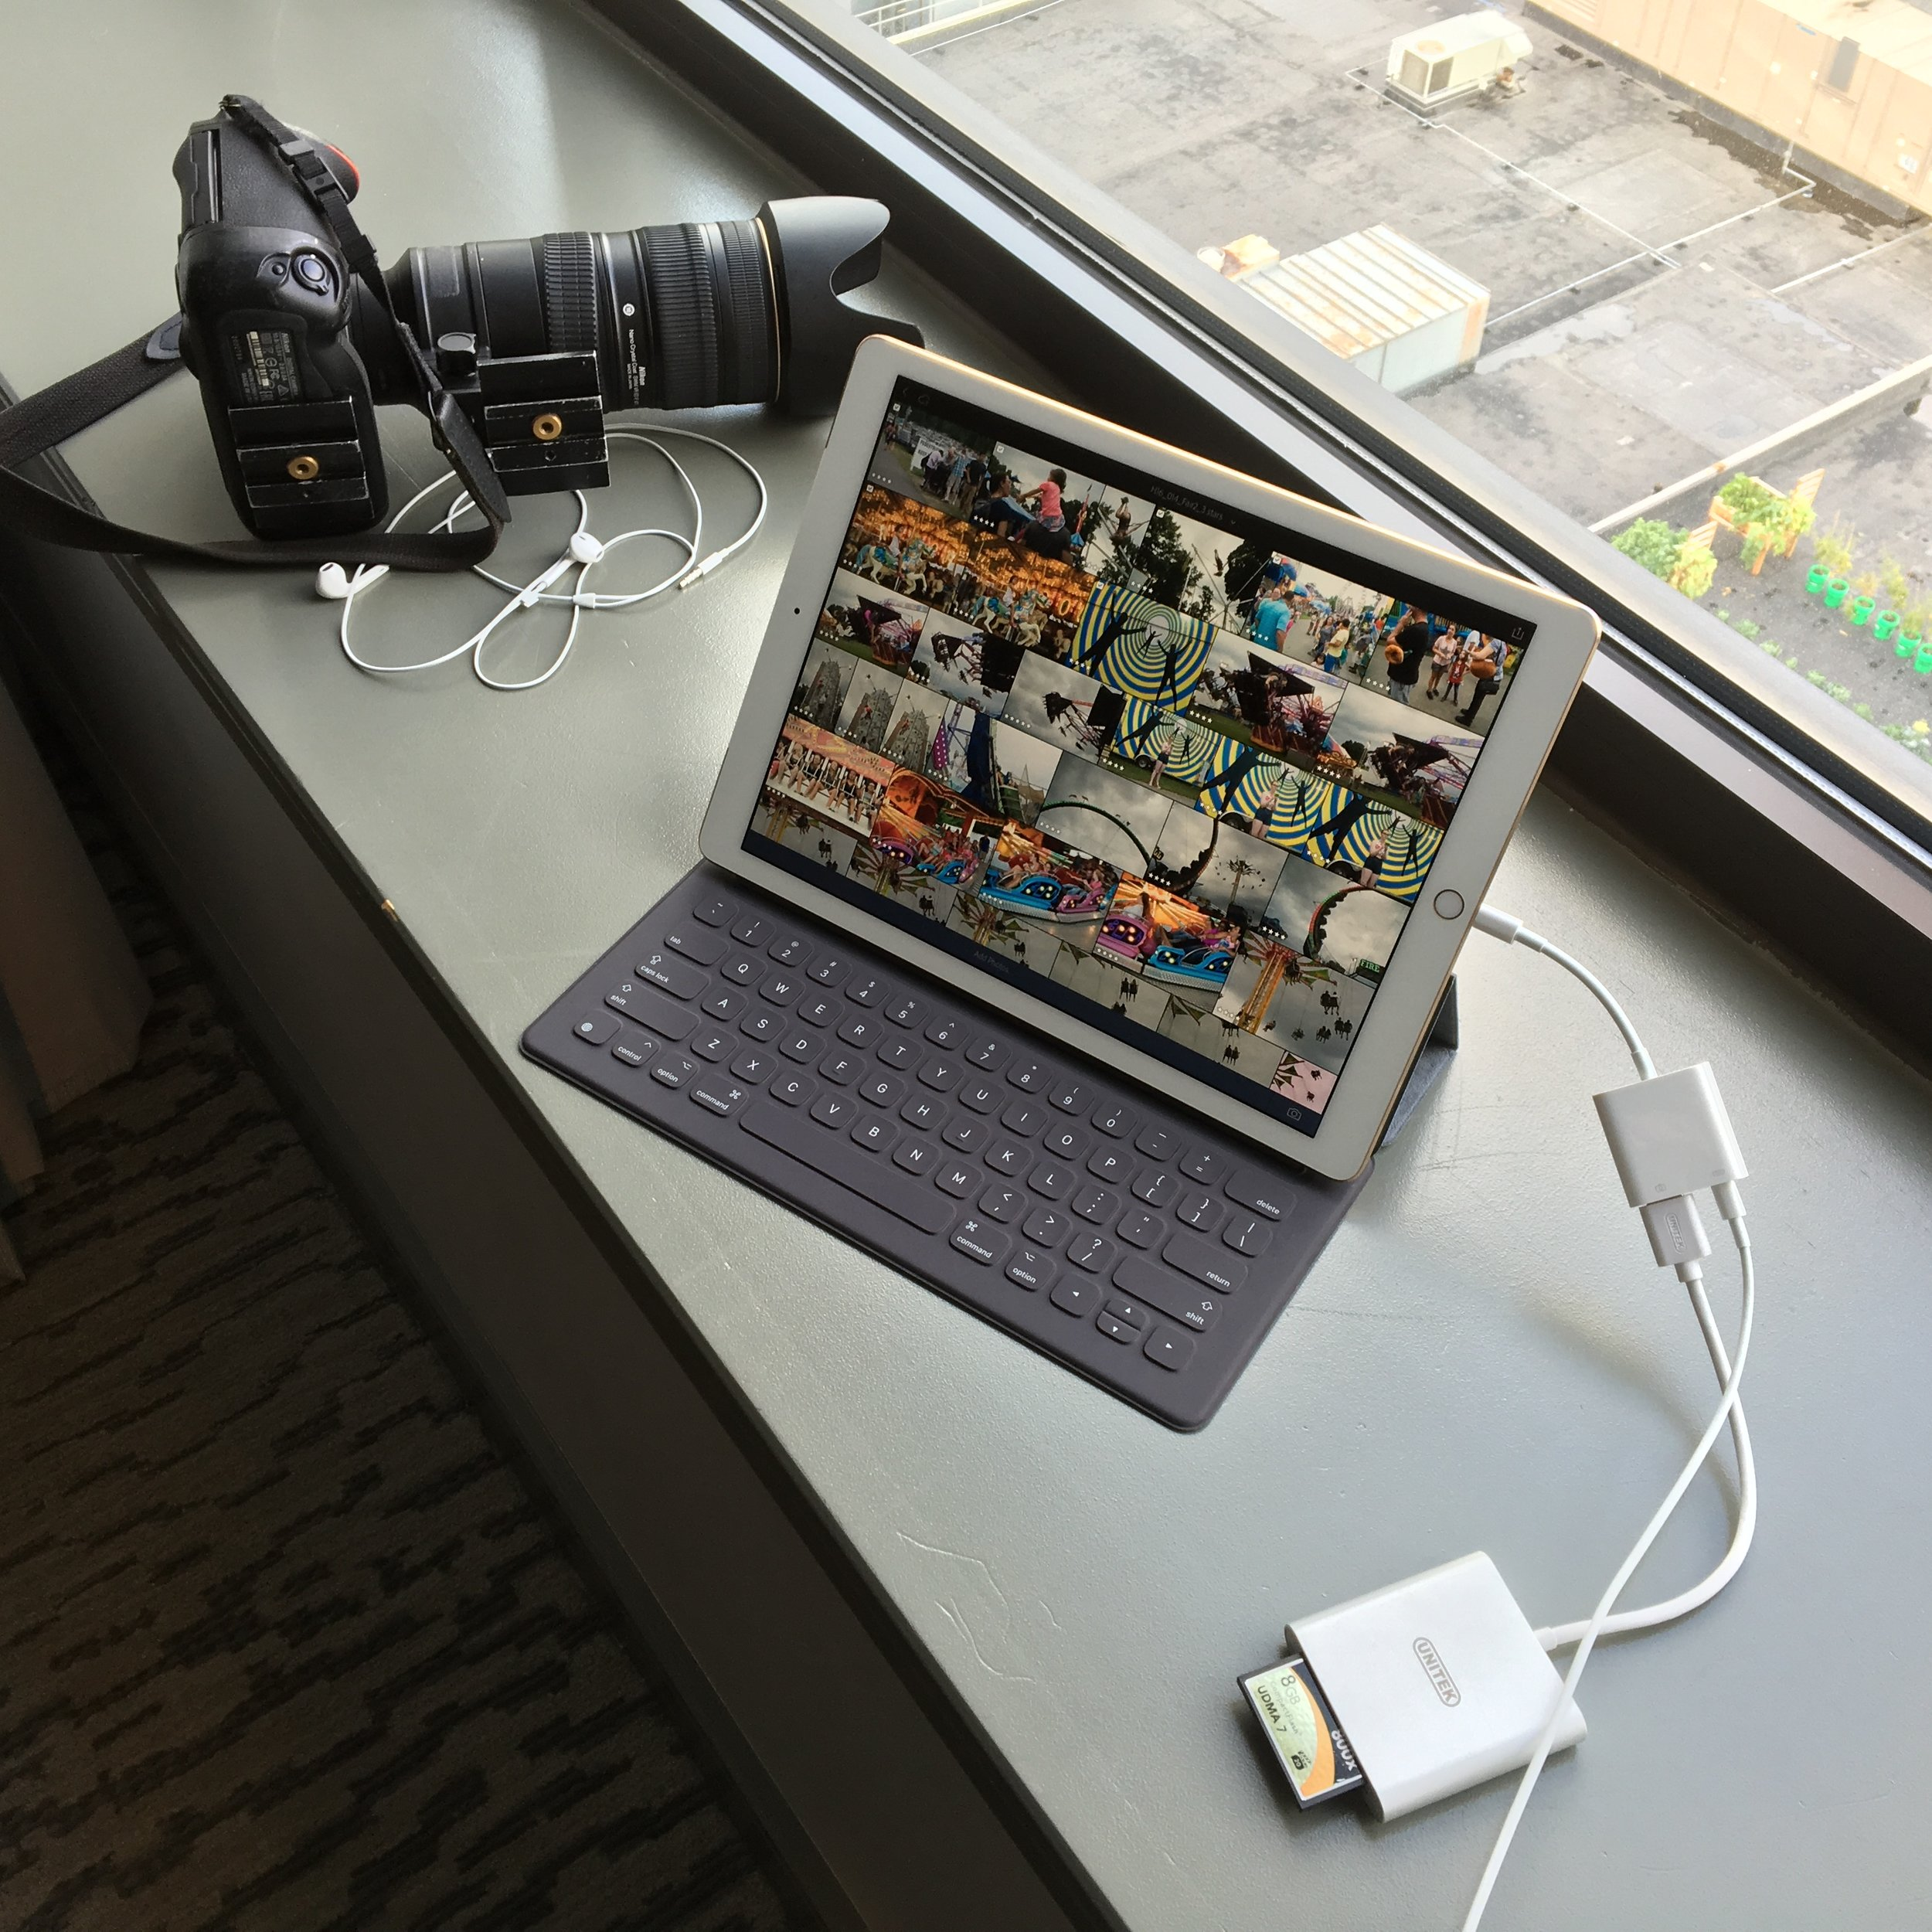 Downloading CF card w/Raw files in hotel rom using Apple Camera Connector Adaptor